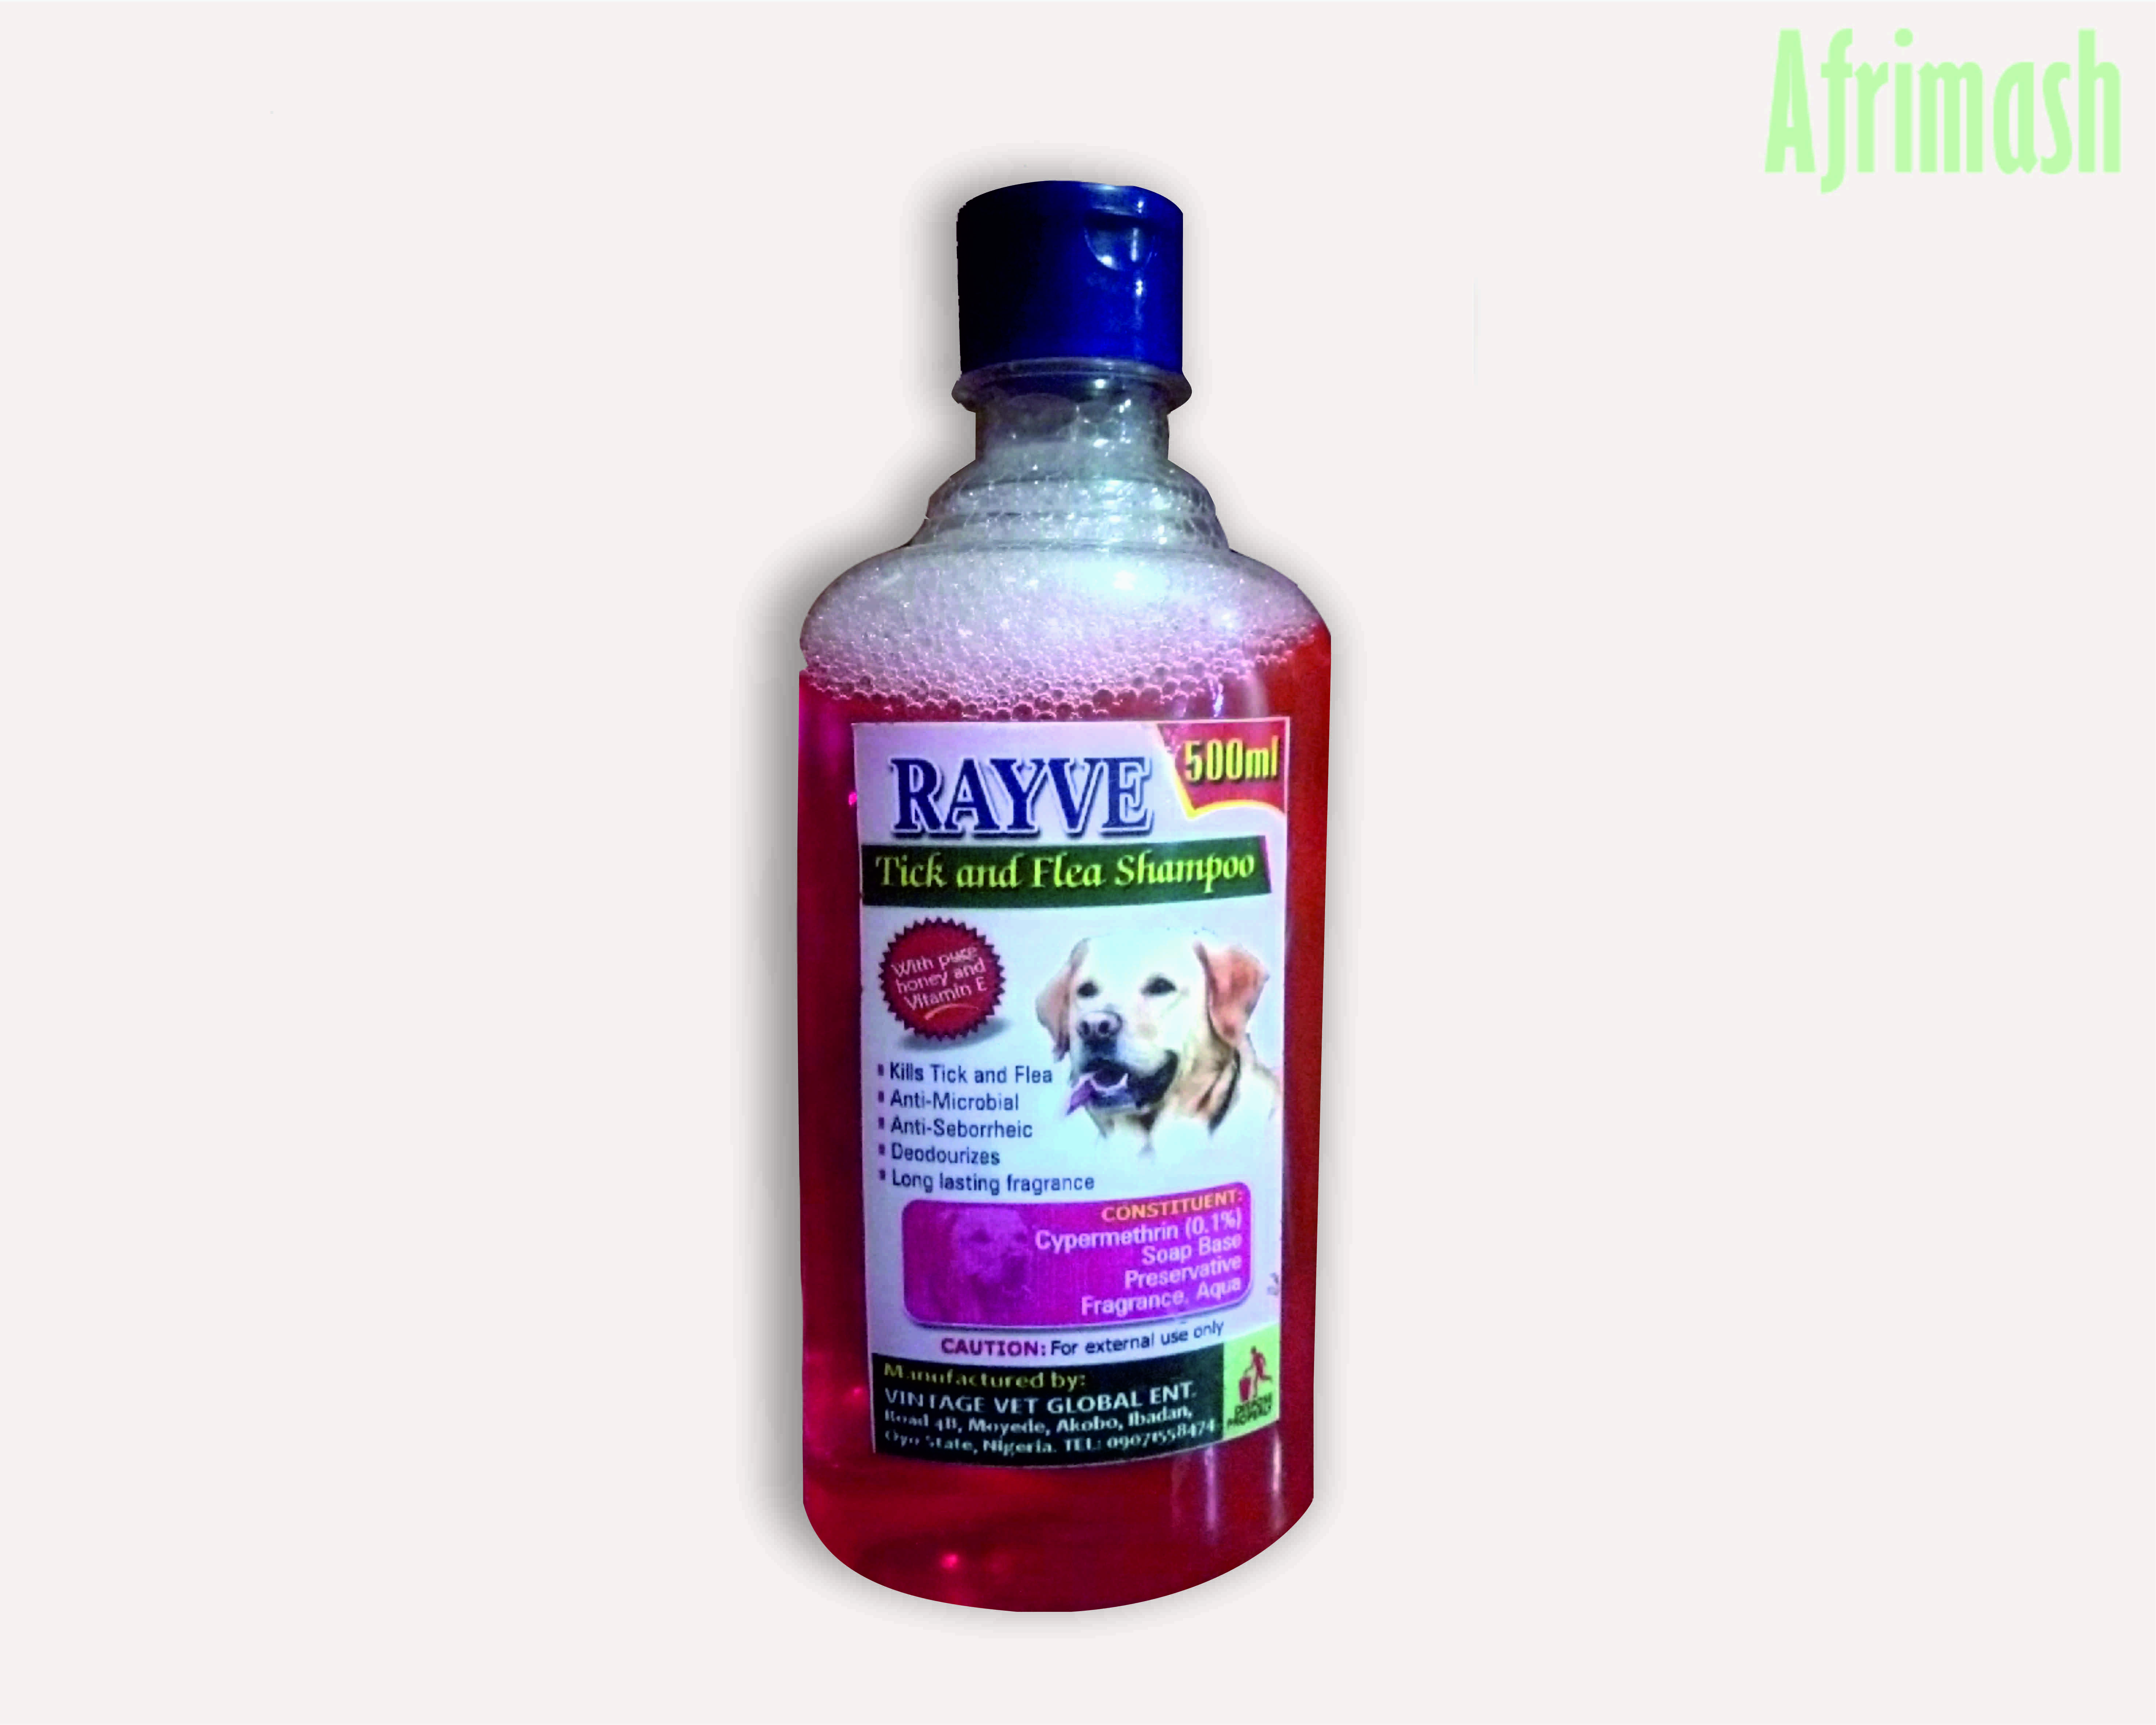 Rayve tick and flea shampoo